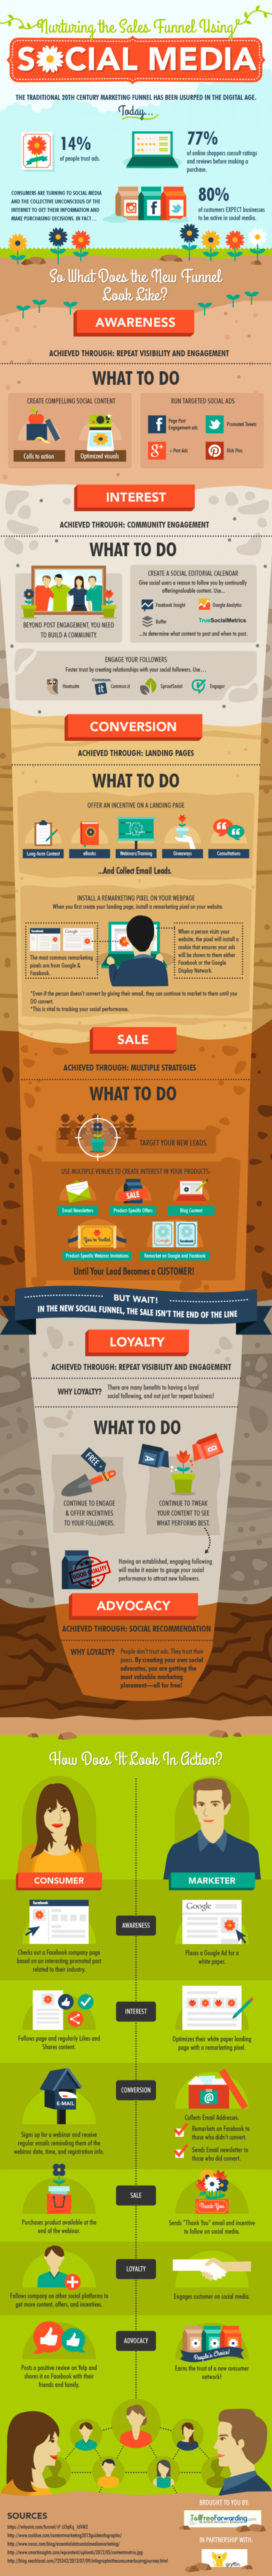 Nurturing the Sales Funnel Using Social Media Infographic